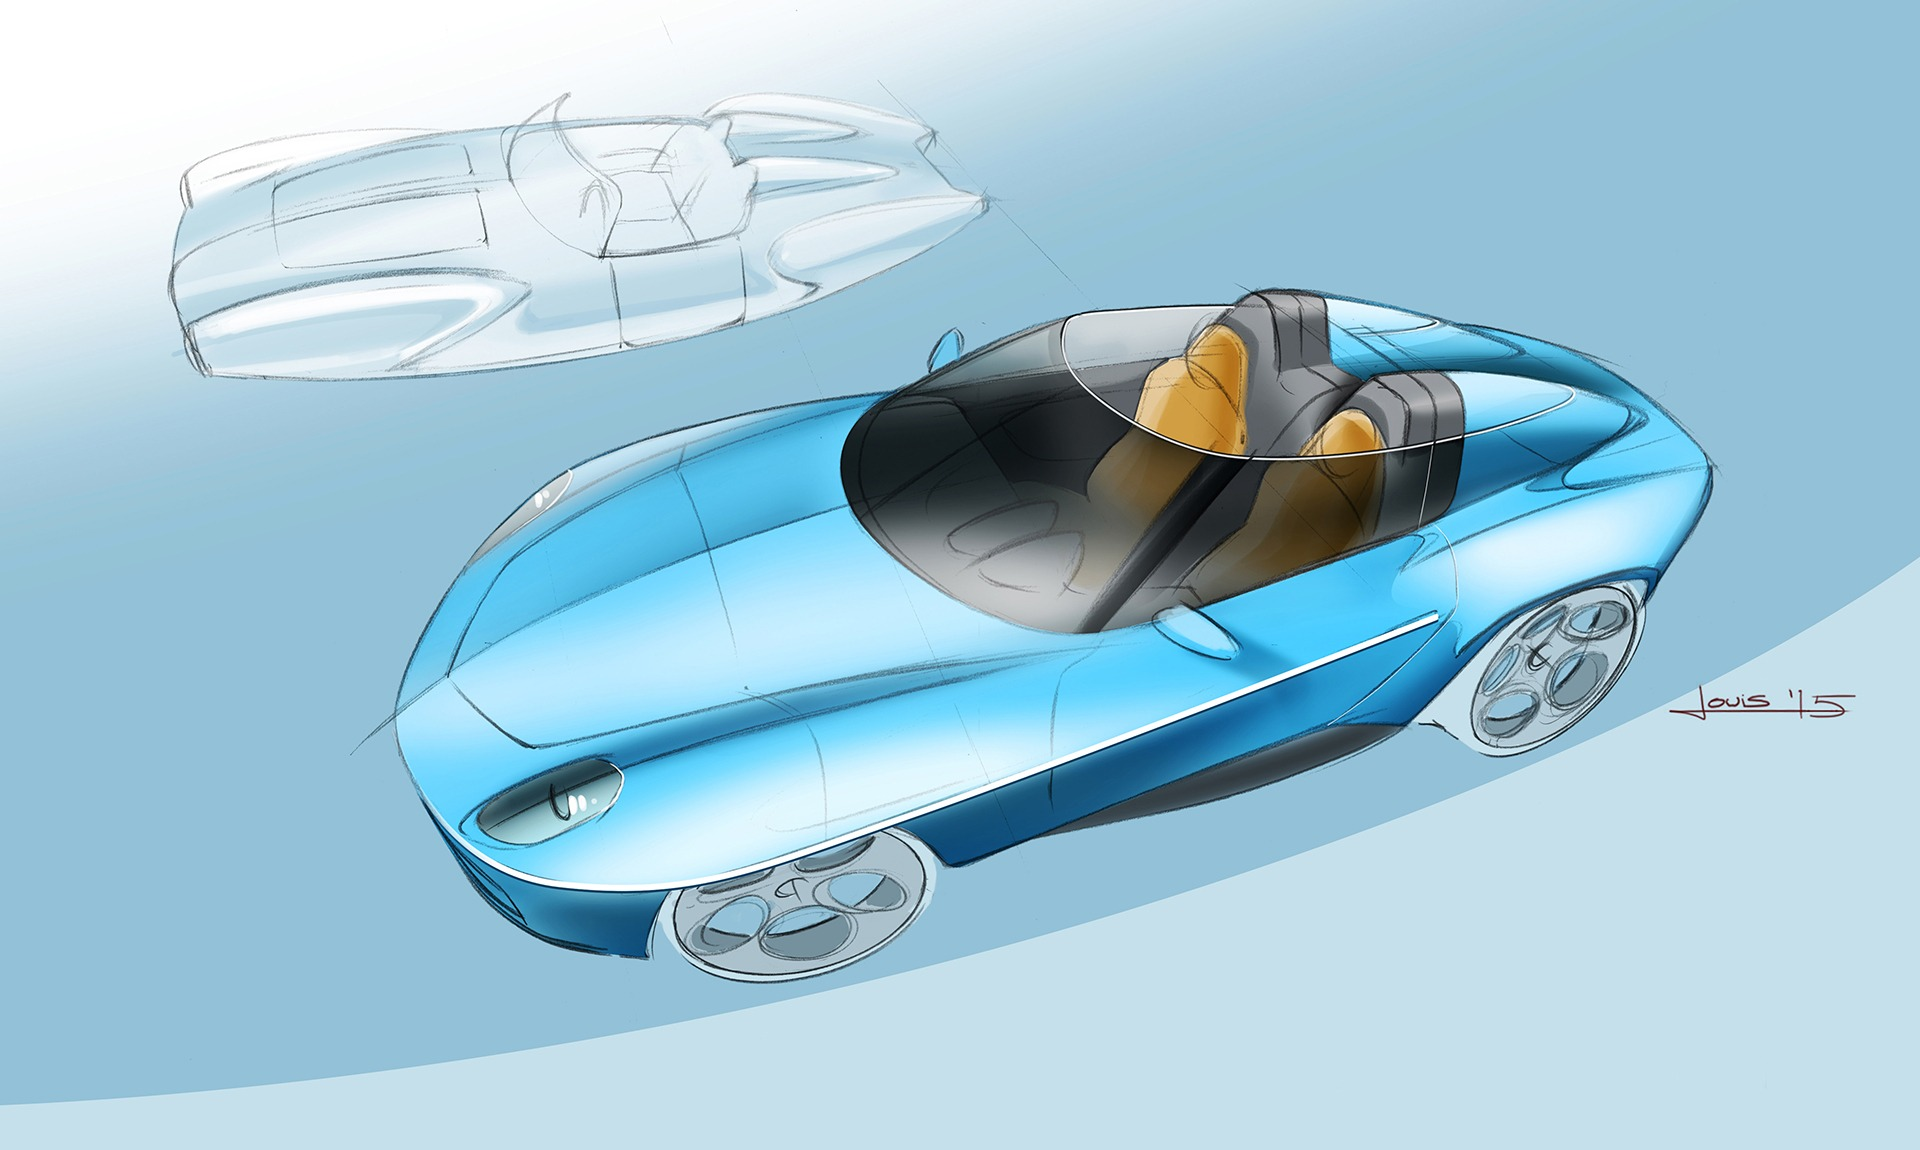 2016-Touring-Superleggera-Alfa-Romeo-Disco-Volante-Spyder-Design-Sketch-01